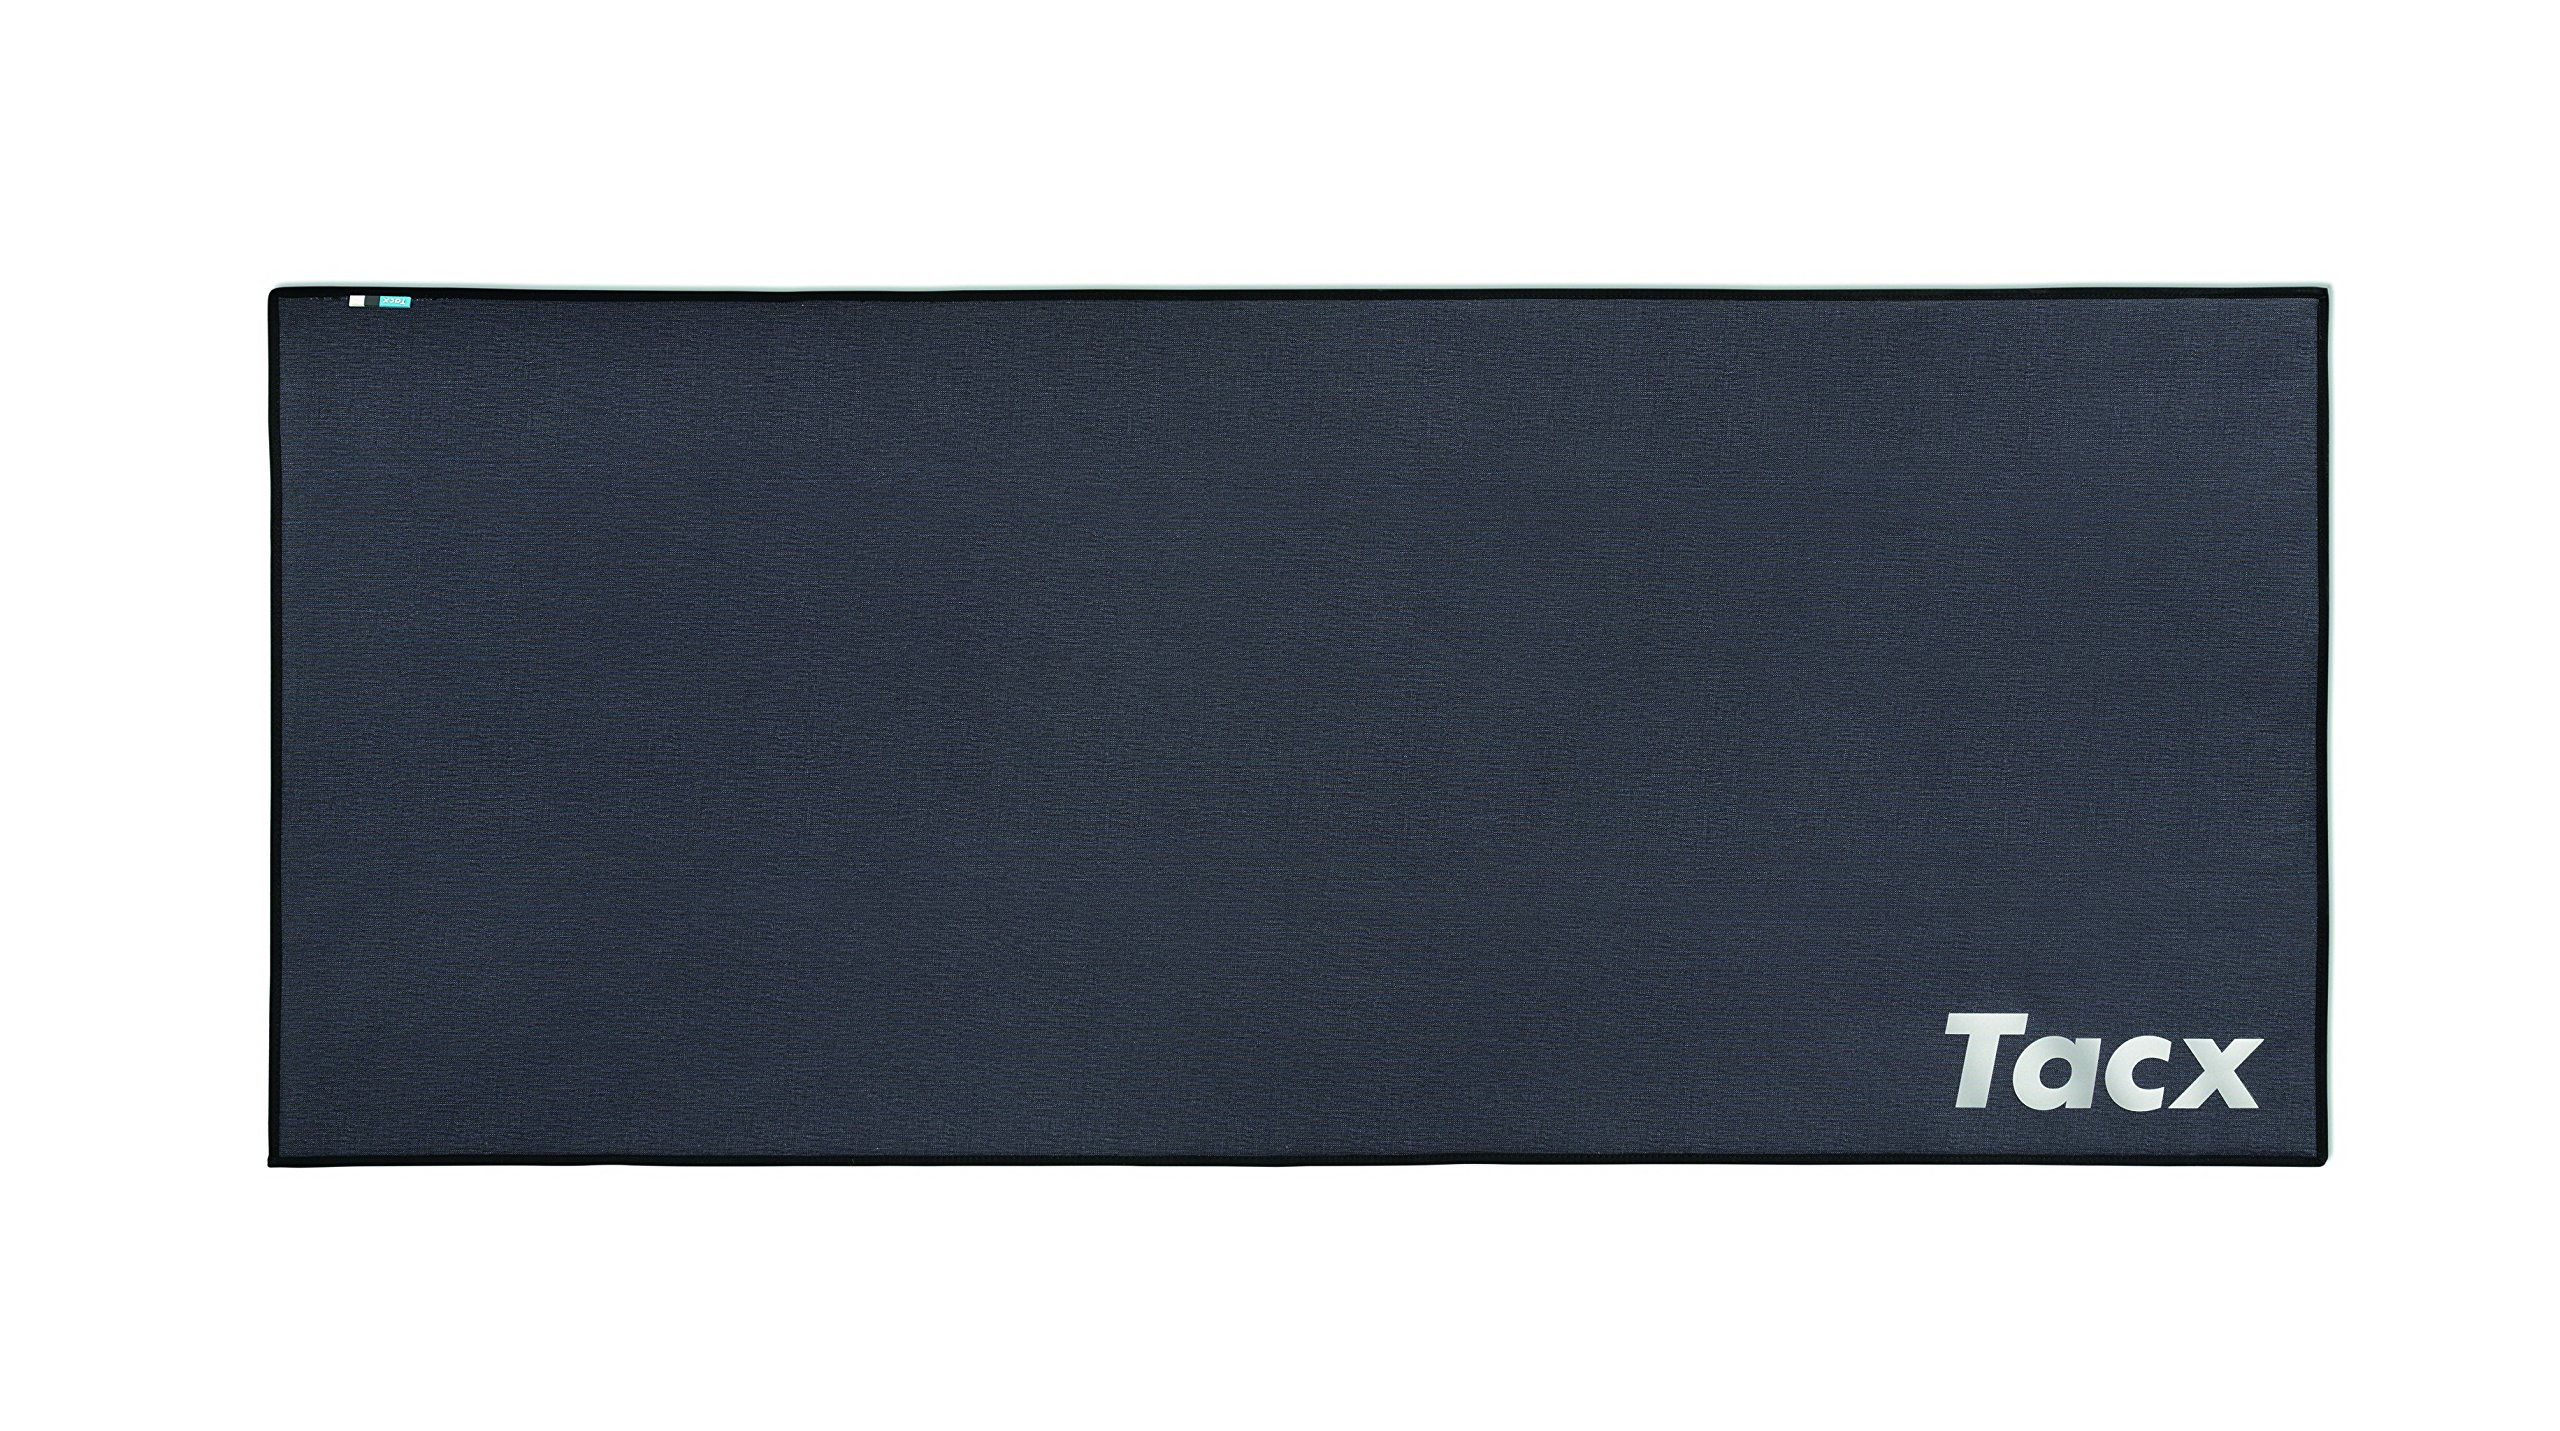 Tacx Folding Training Mat by Tacx